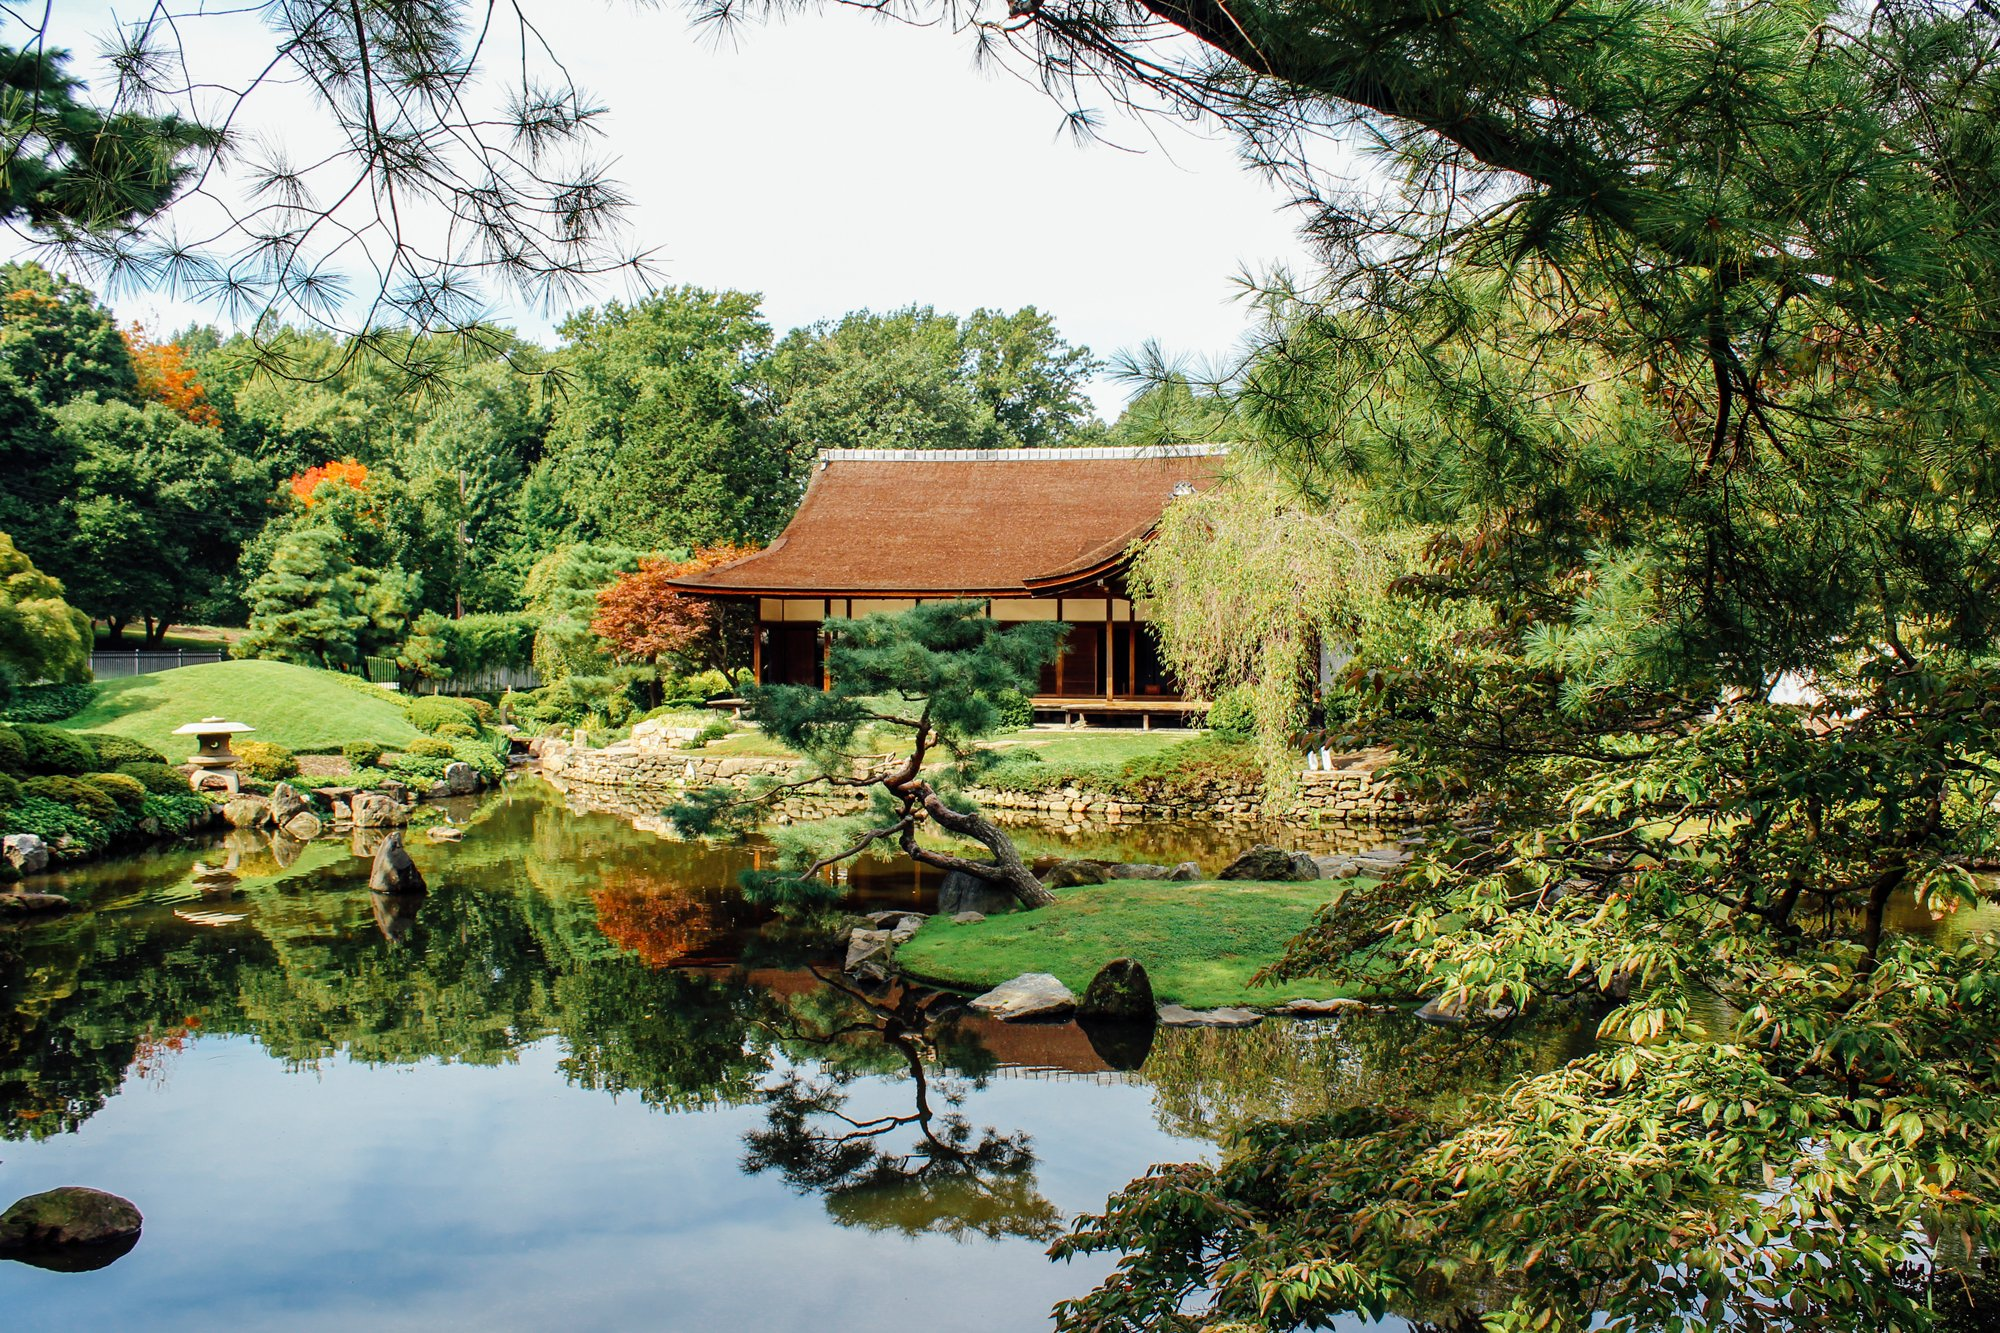 Philadelphia's gorgeous @Shofuso Japanese House and Garden is celebrating its 60th Anniversary in West Fairmount Park this October with special concerts, tea demonstrations and a brand new multimedia exhibition by artist-in-residence Aaron Mannino. #discoverPHL https://t.co/2jaWiw82xz